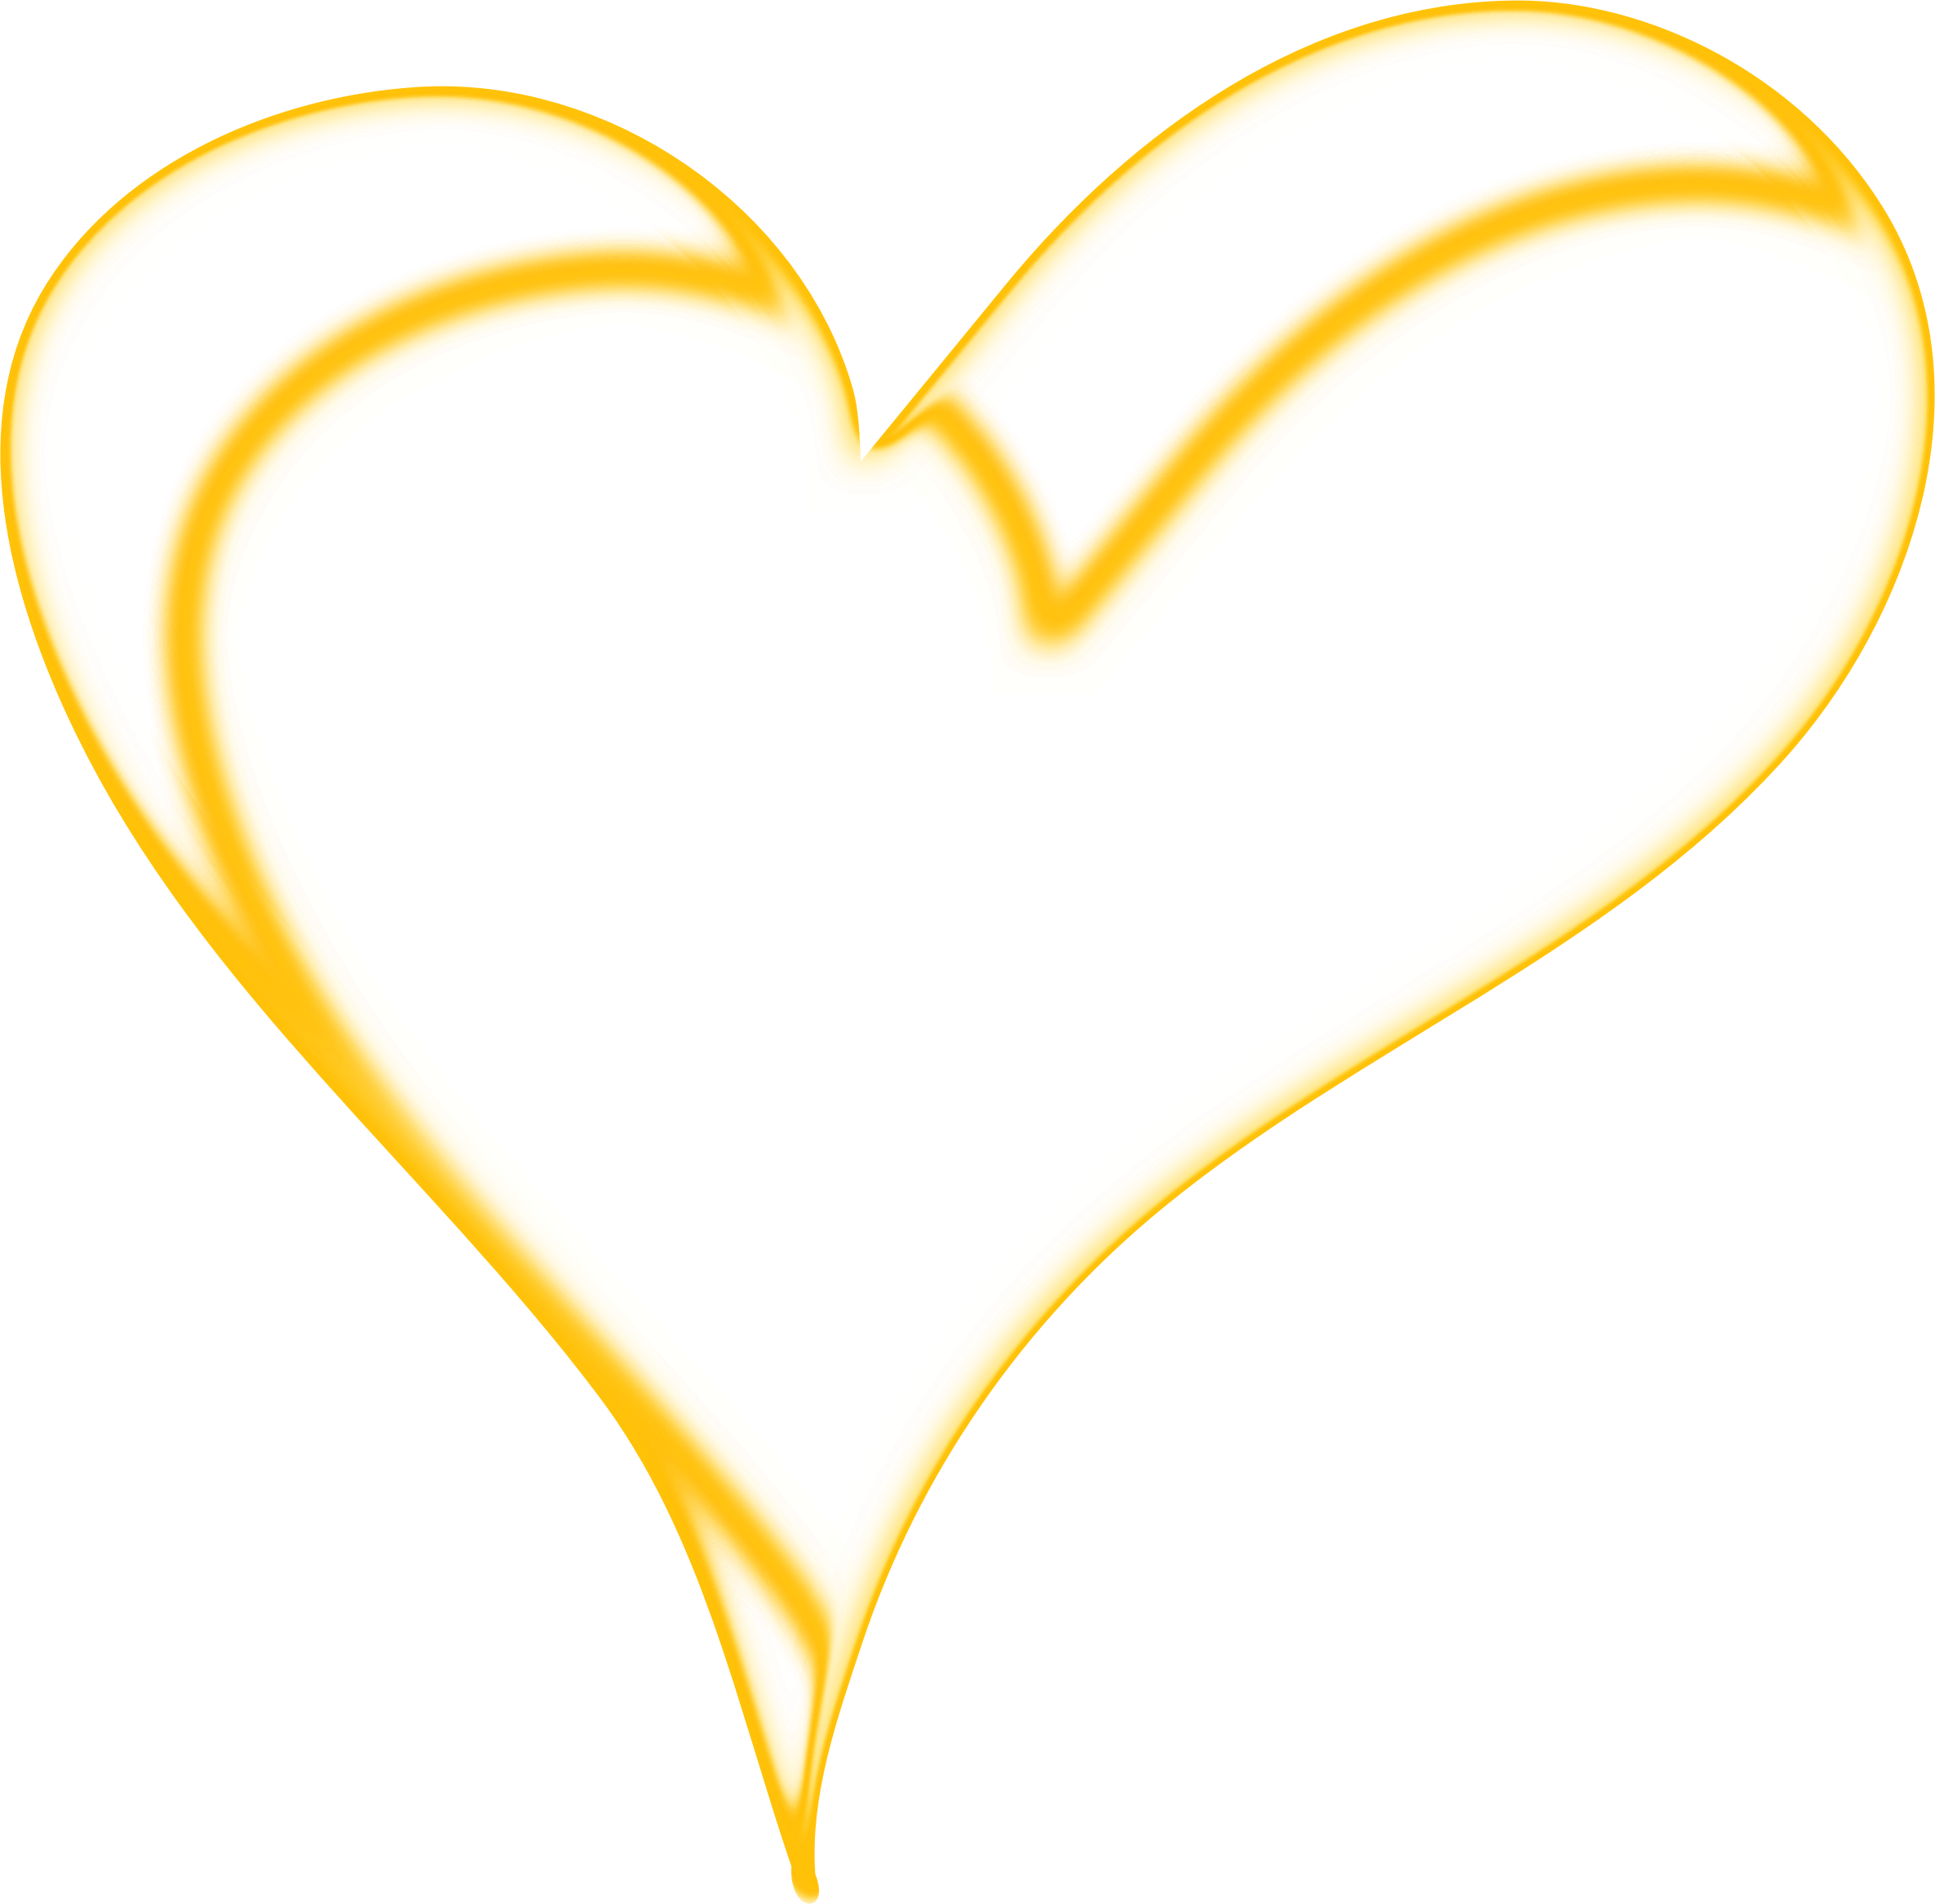 Gold heart outline clipart clip art black and white Clipart - Heart of Gold clip art black and white